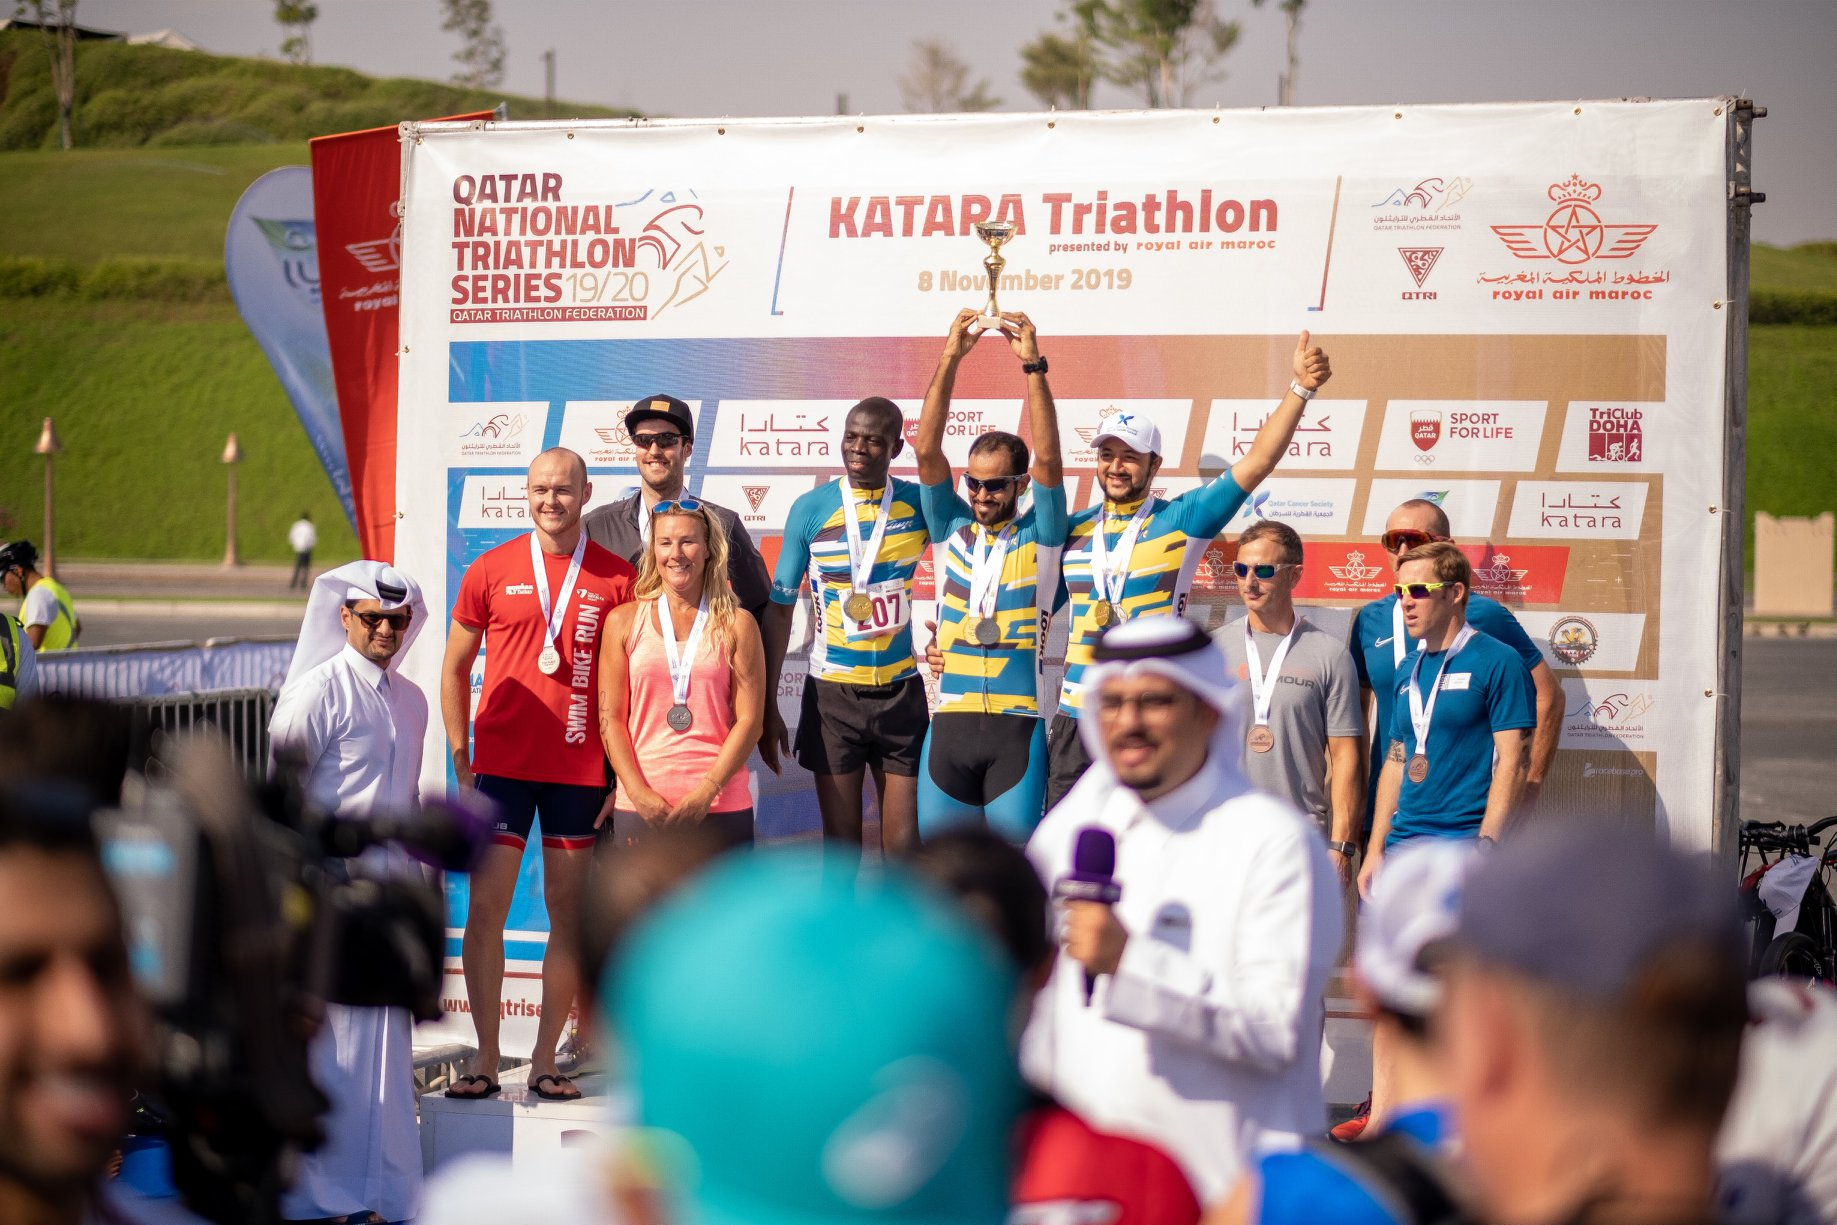 Final standings of Qatar National Triathlon Series 2019/2020